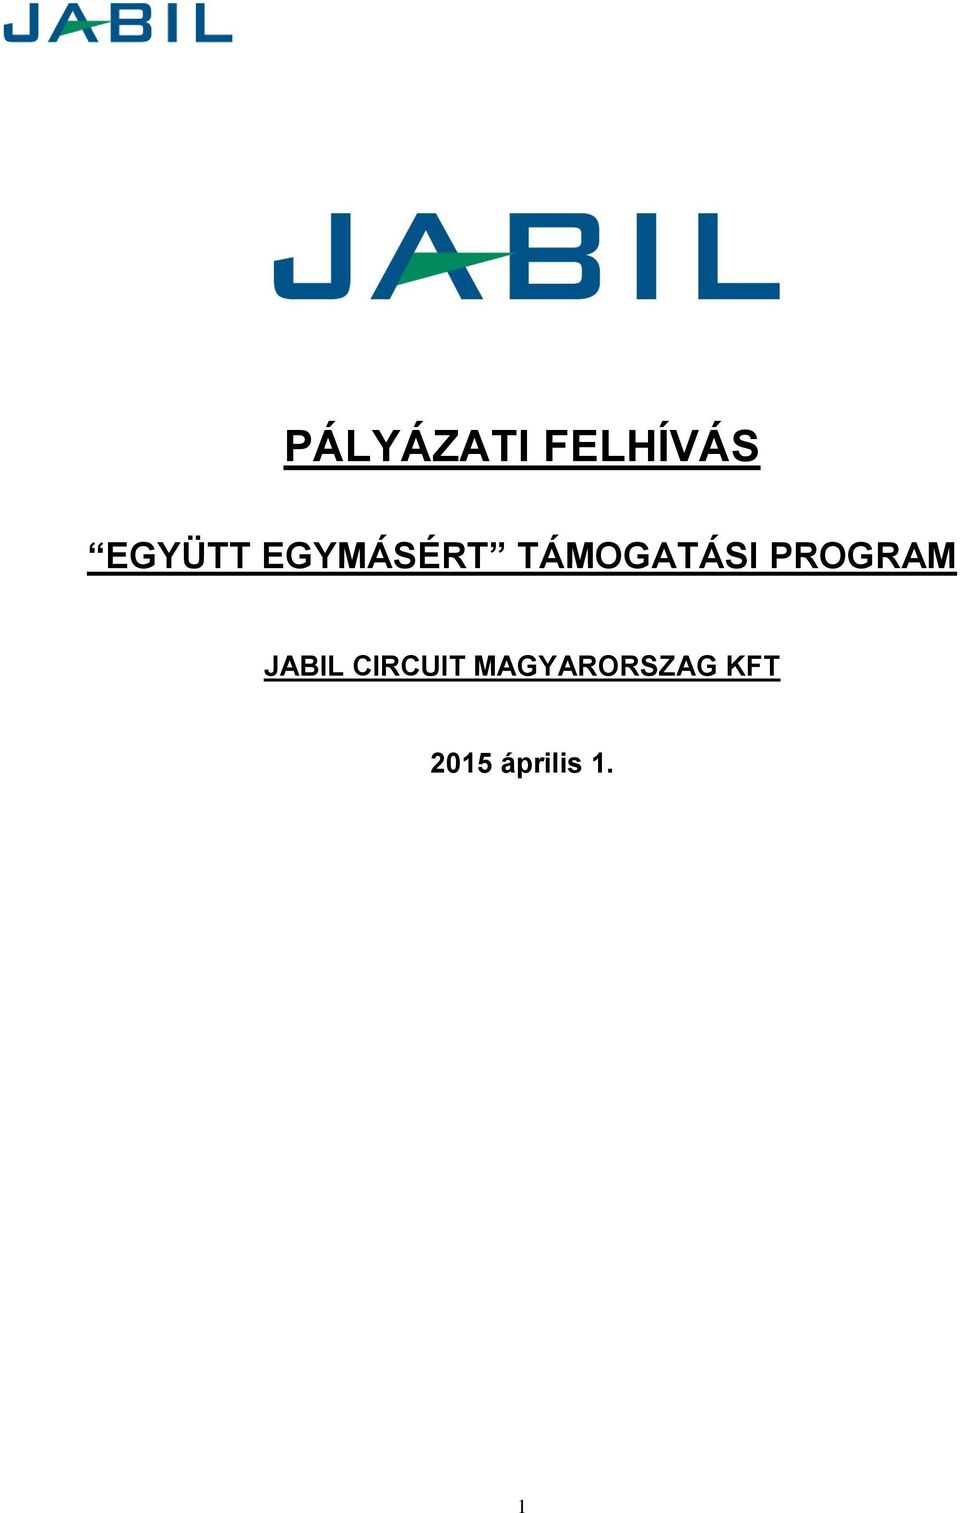 PROGRAM JABIL CIRCUIT